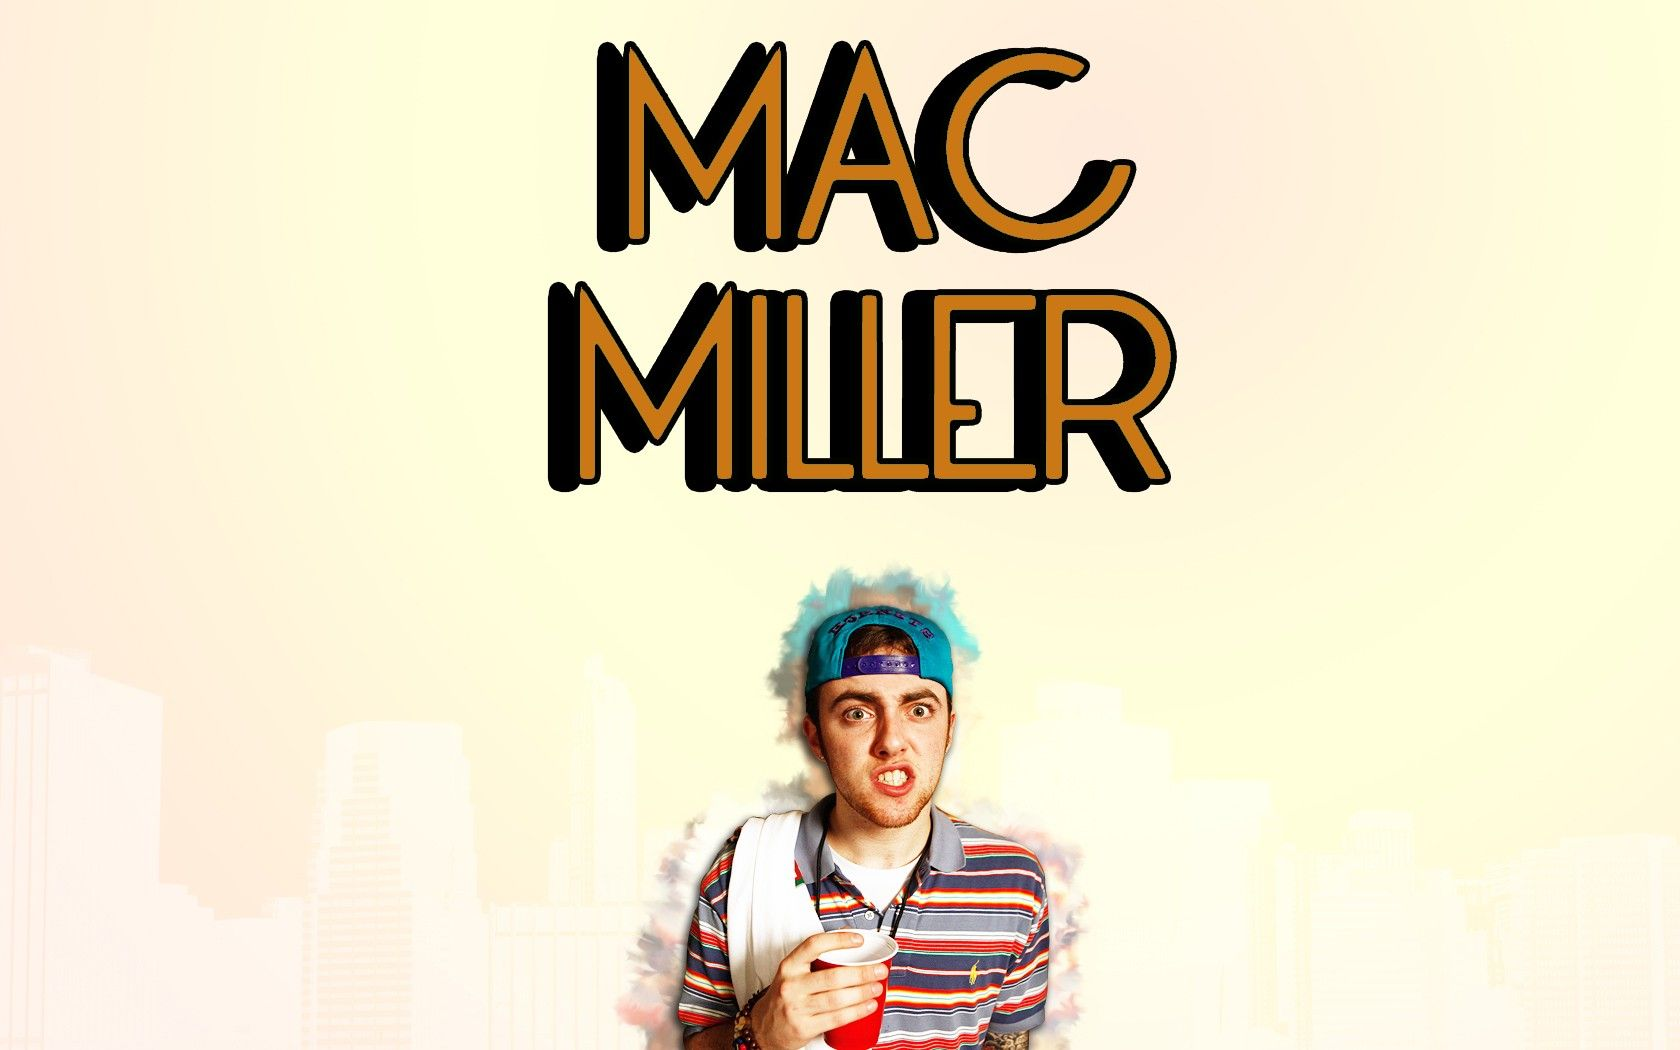 1680x1050 Mac Miller Wallpapers Group with 38 items